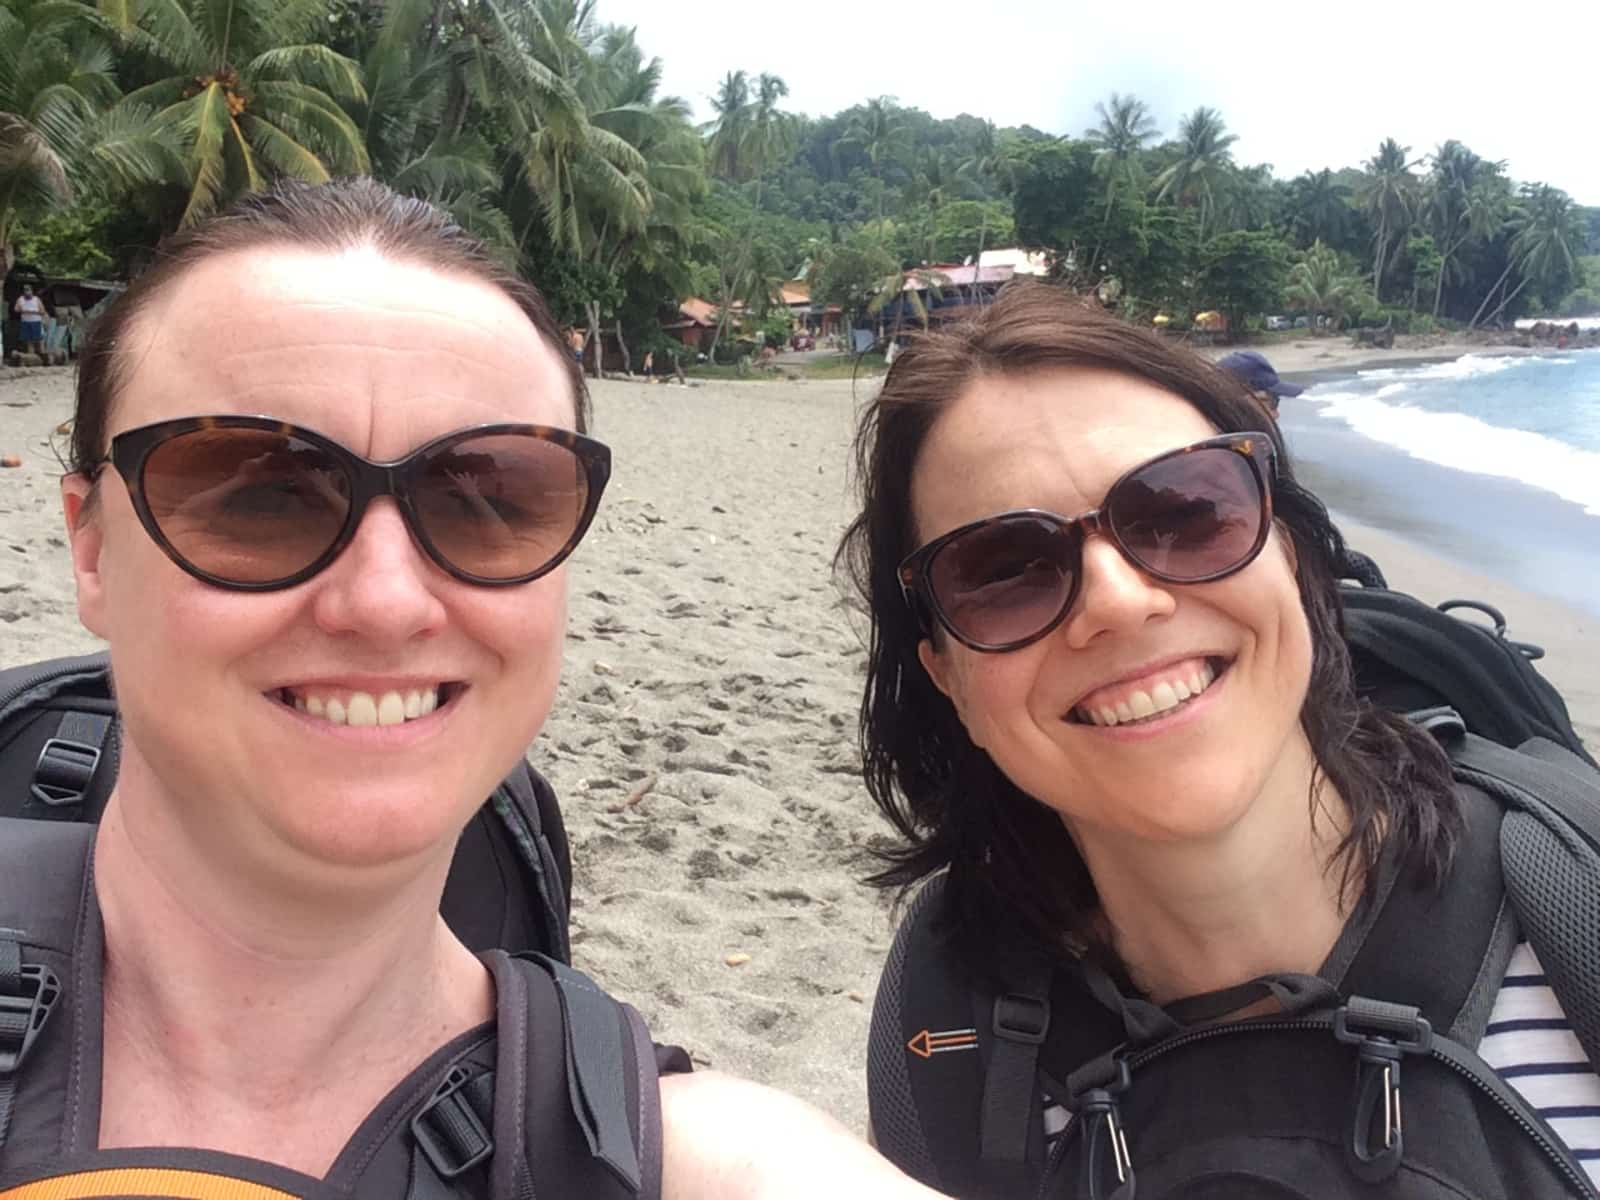 Helen & Siobhan from Glasgow, United Kingdom